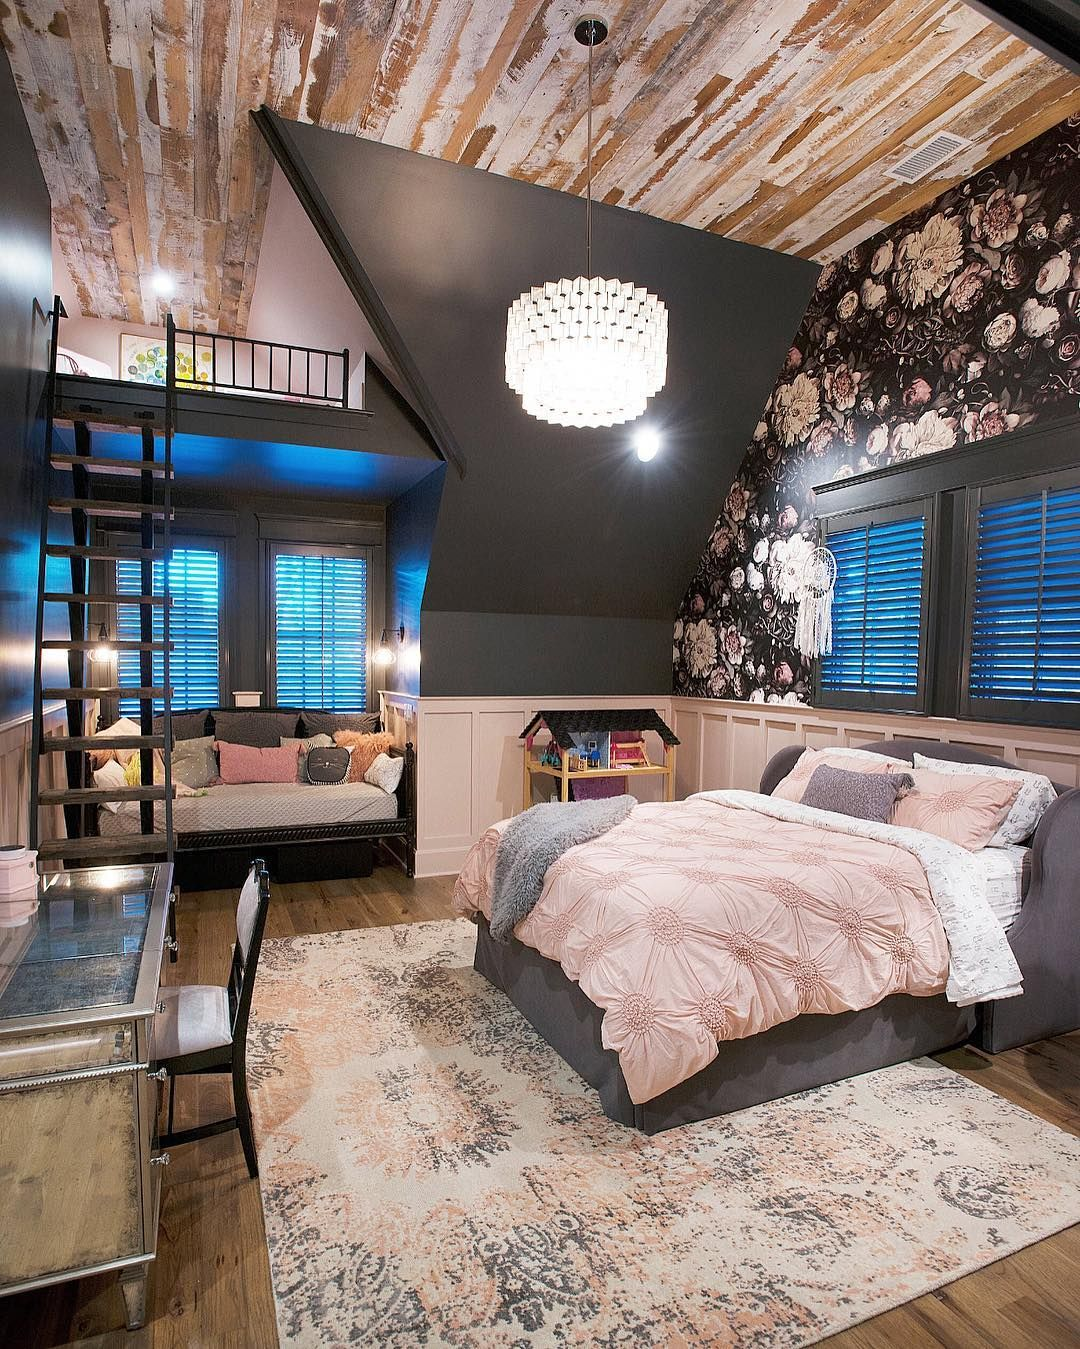 Budget Friendly Decor Ideas For The Master Bedroom Cheap Bedroom